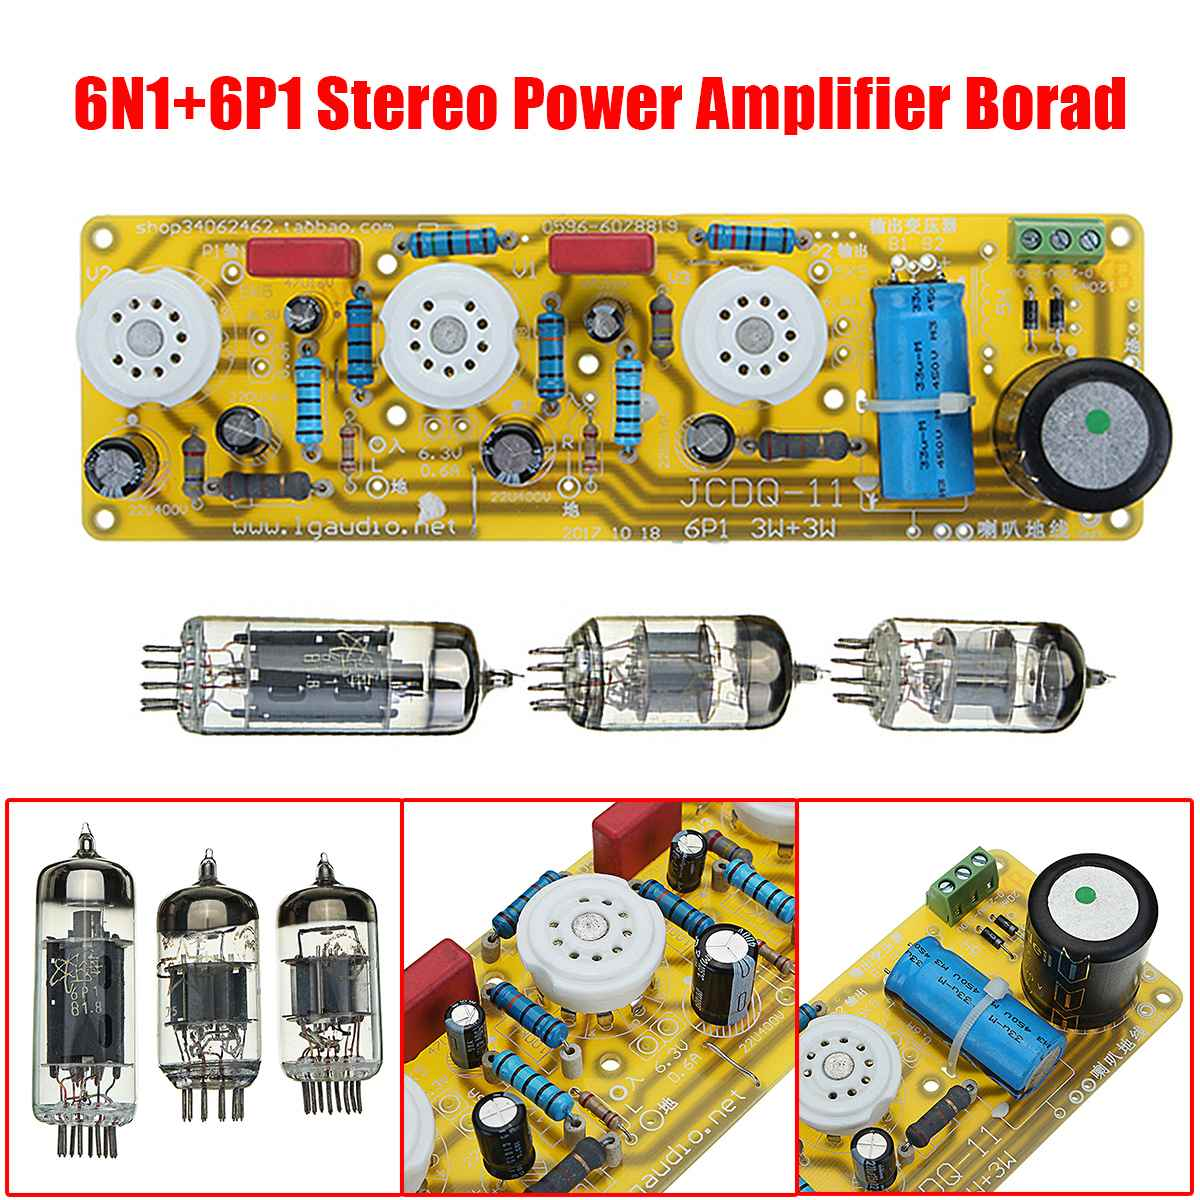 LEORY JCDQ11 Tube Amplifier 6N1+6P1 Audio Stereo Amplifier Board Filament AC Power Supply + 3Pcs Tubes